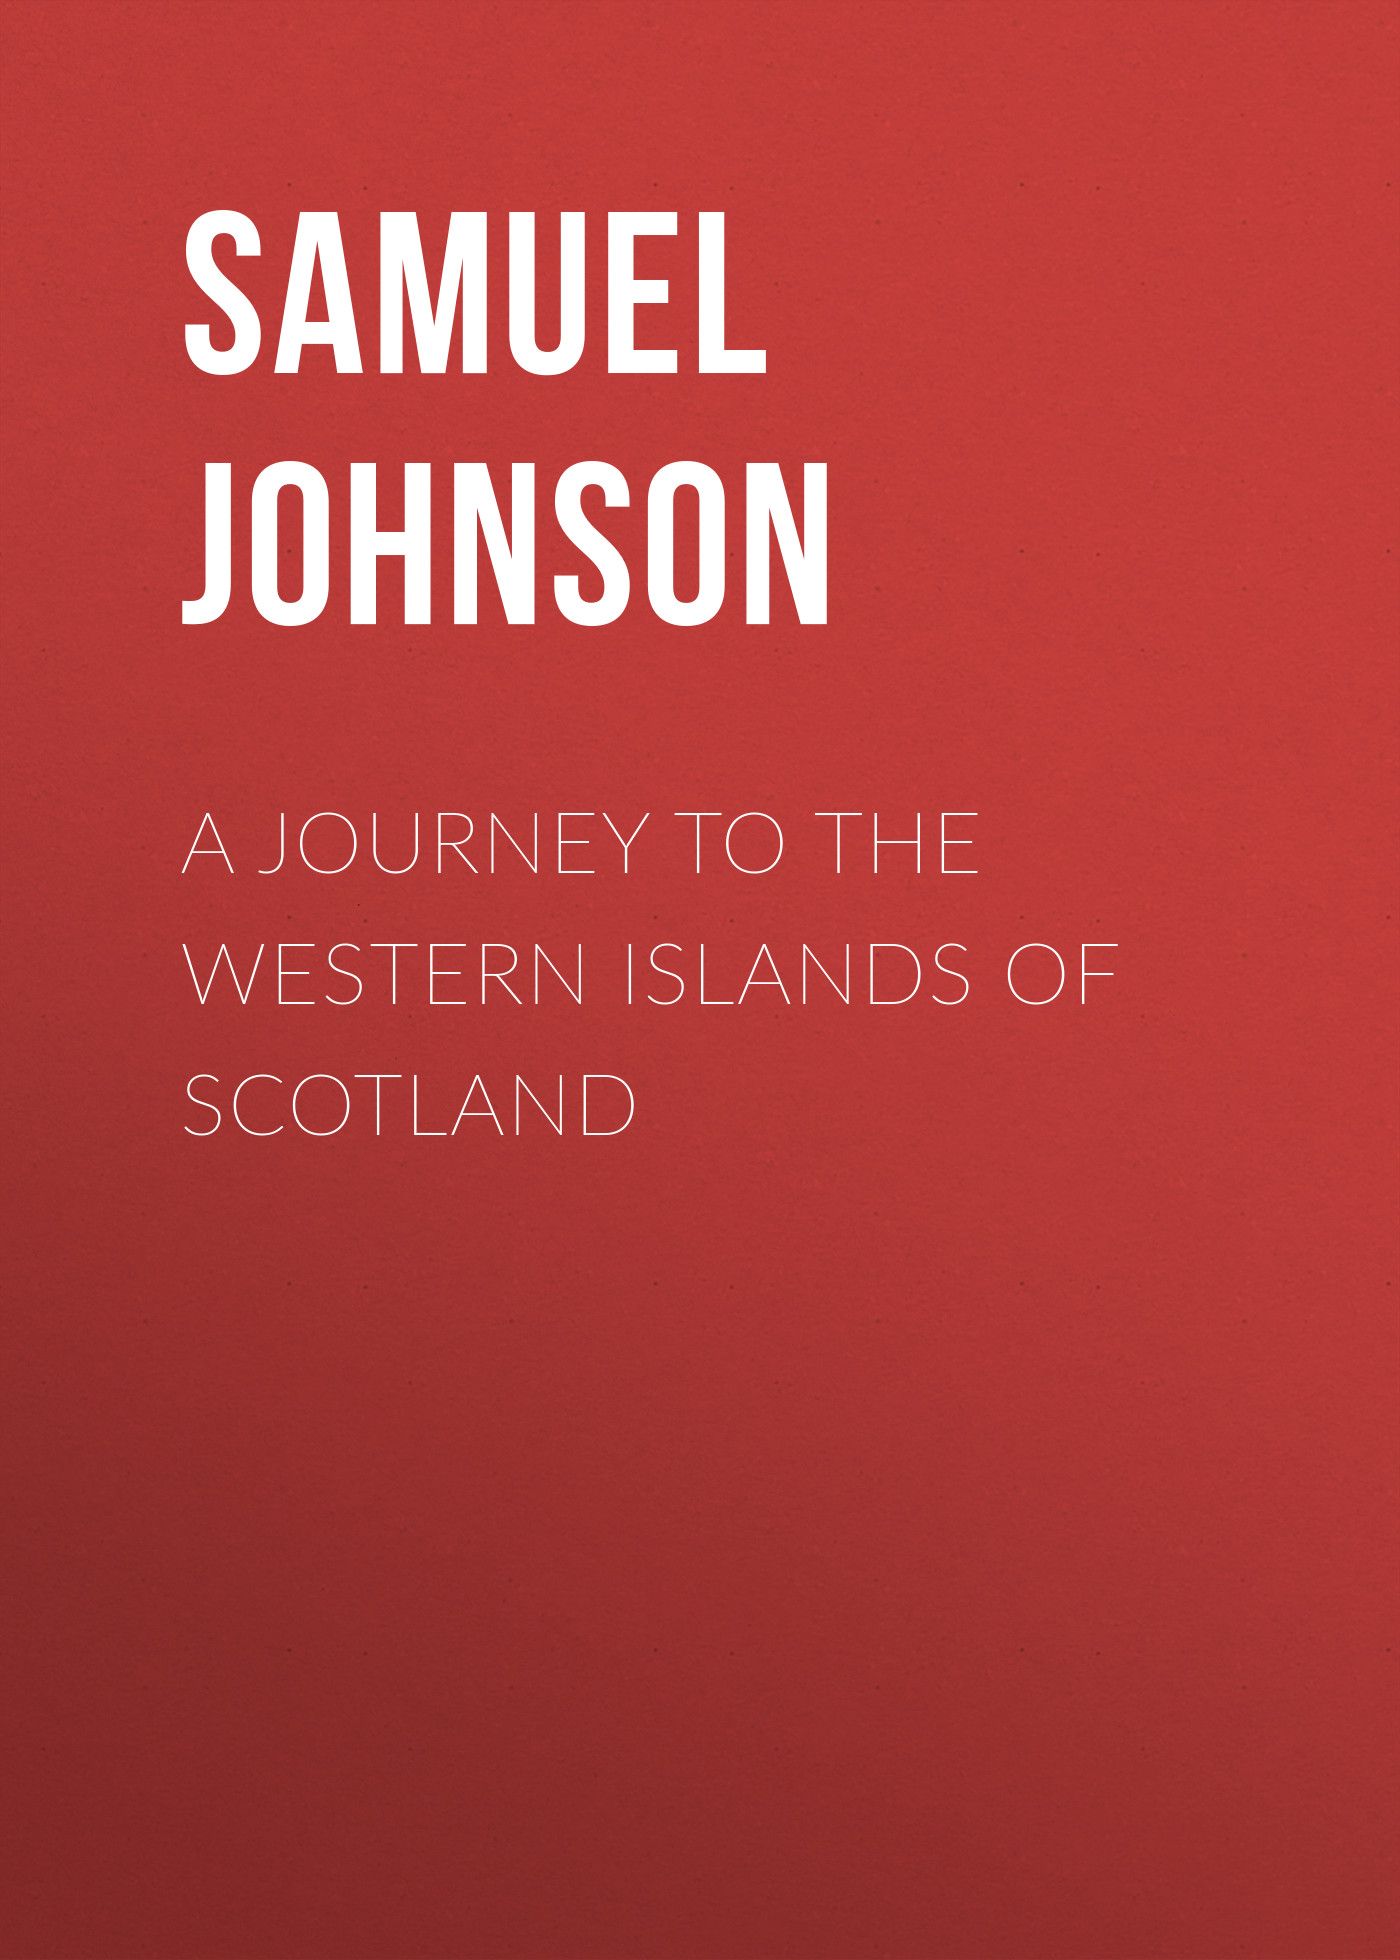 Samuel Johnson A Journey to the Western Islands of Scotland to scotland with love